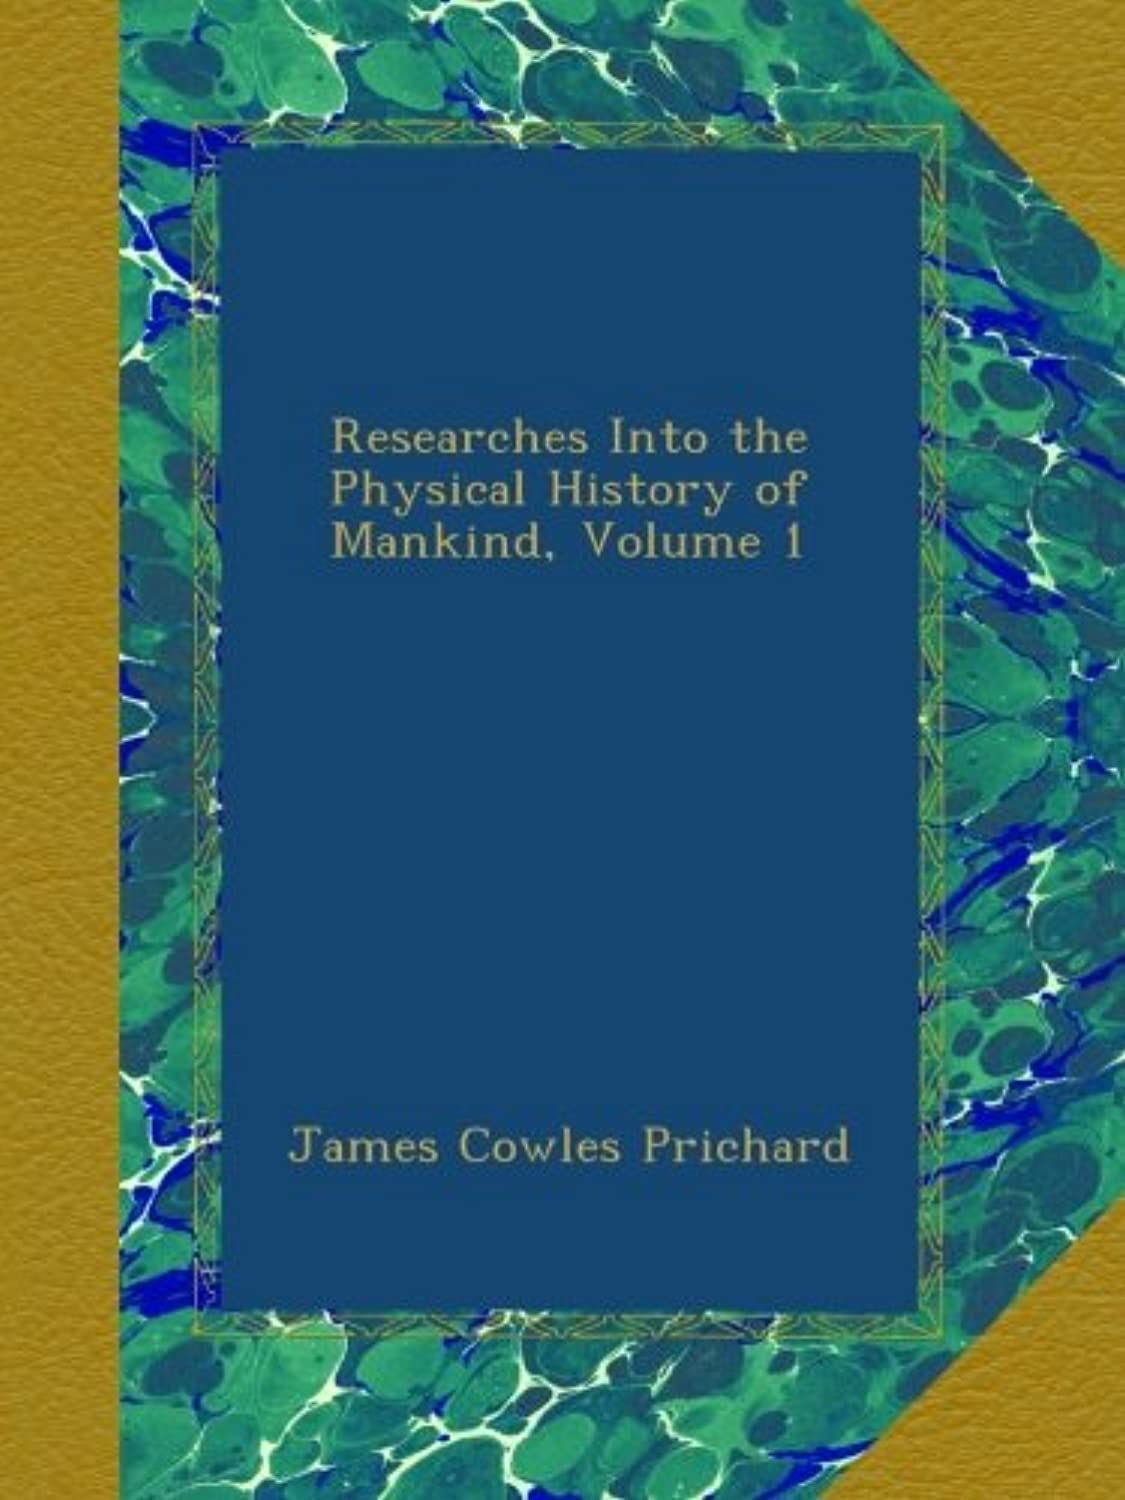 Researches Into the Physical History of Mankind, Volume 1